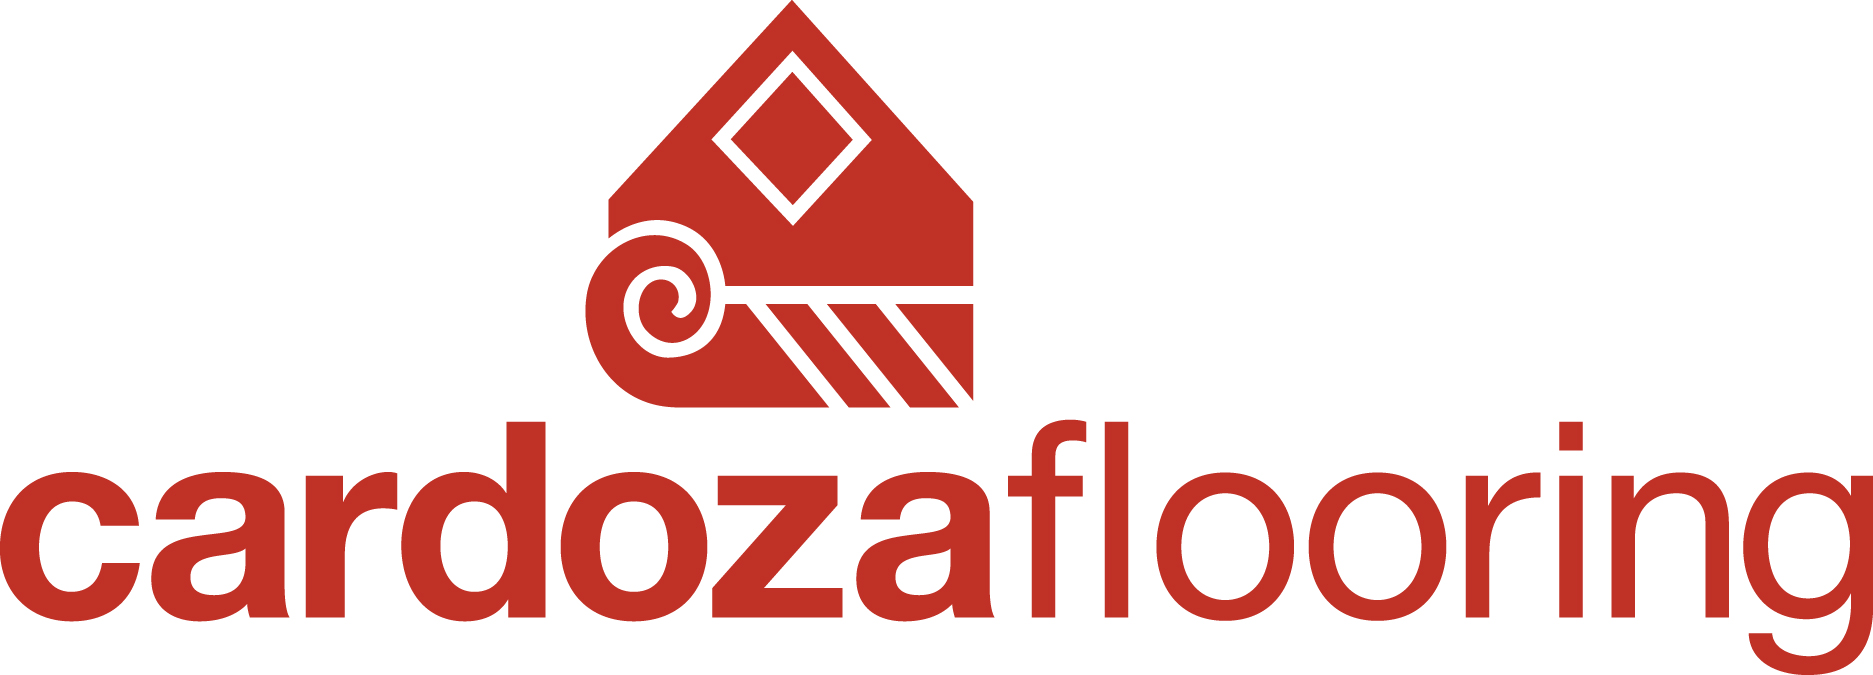 New Hampshire's Top Rated Local® Flooring Contractors Award Winner: Cardoza Flooring